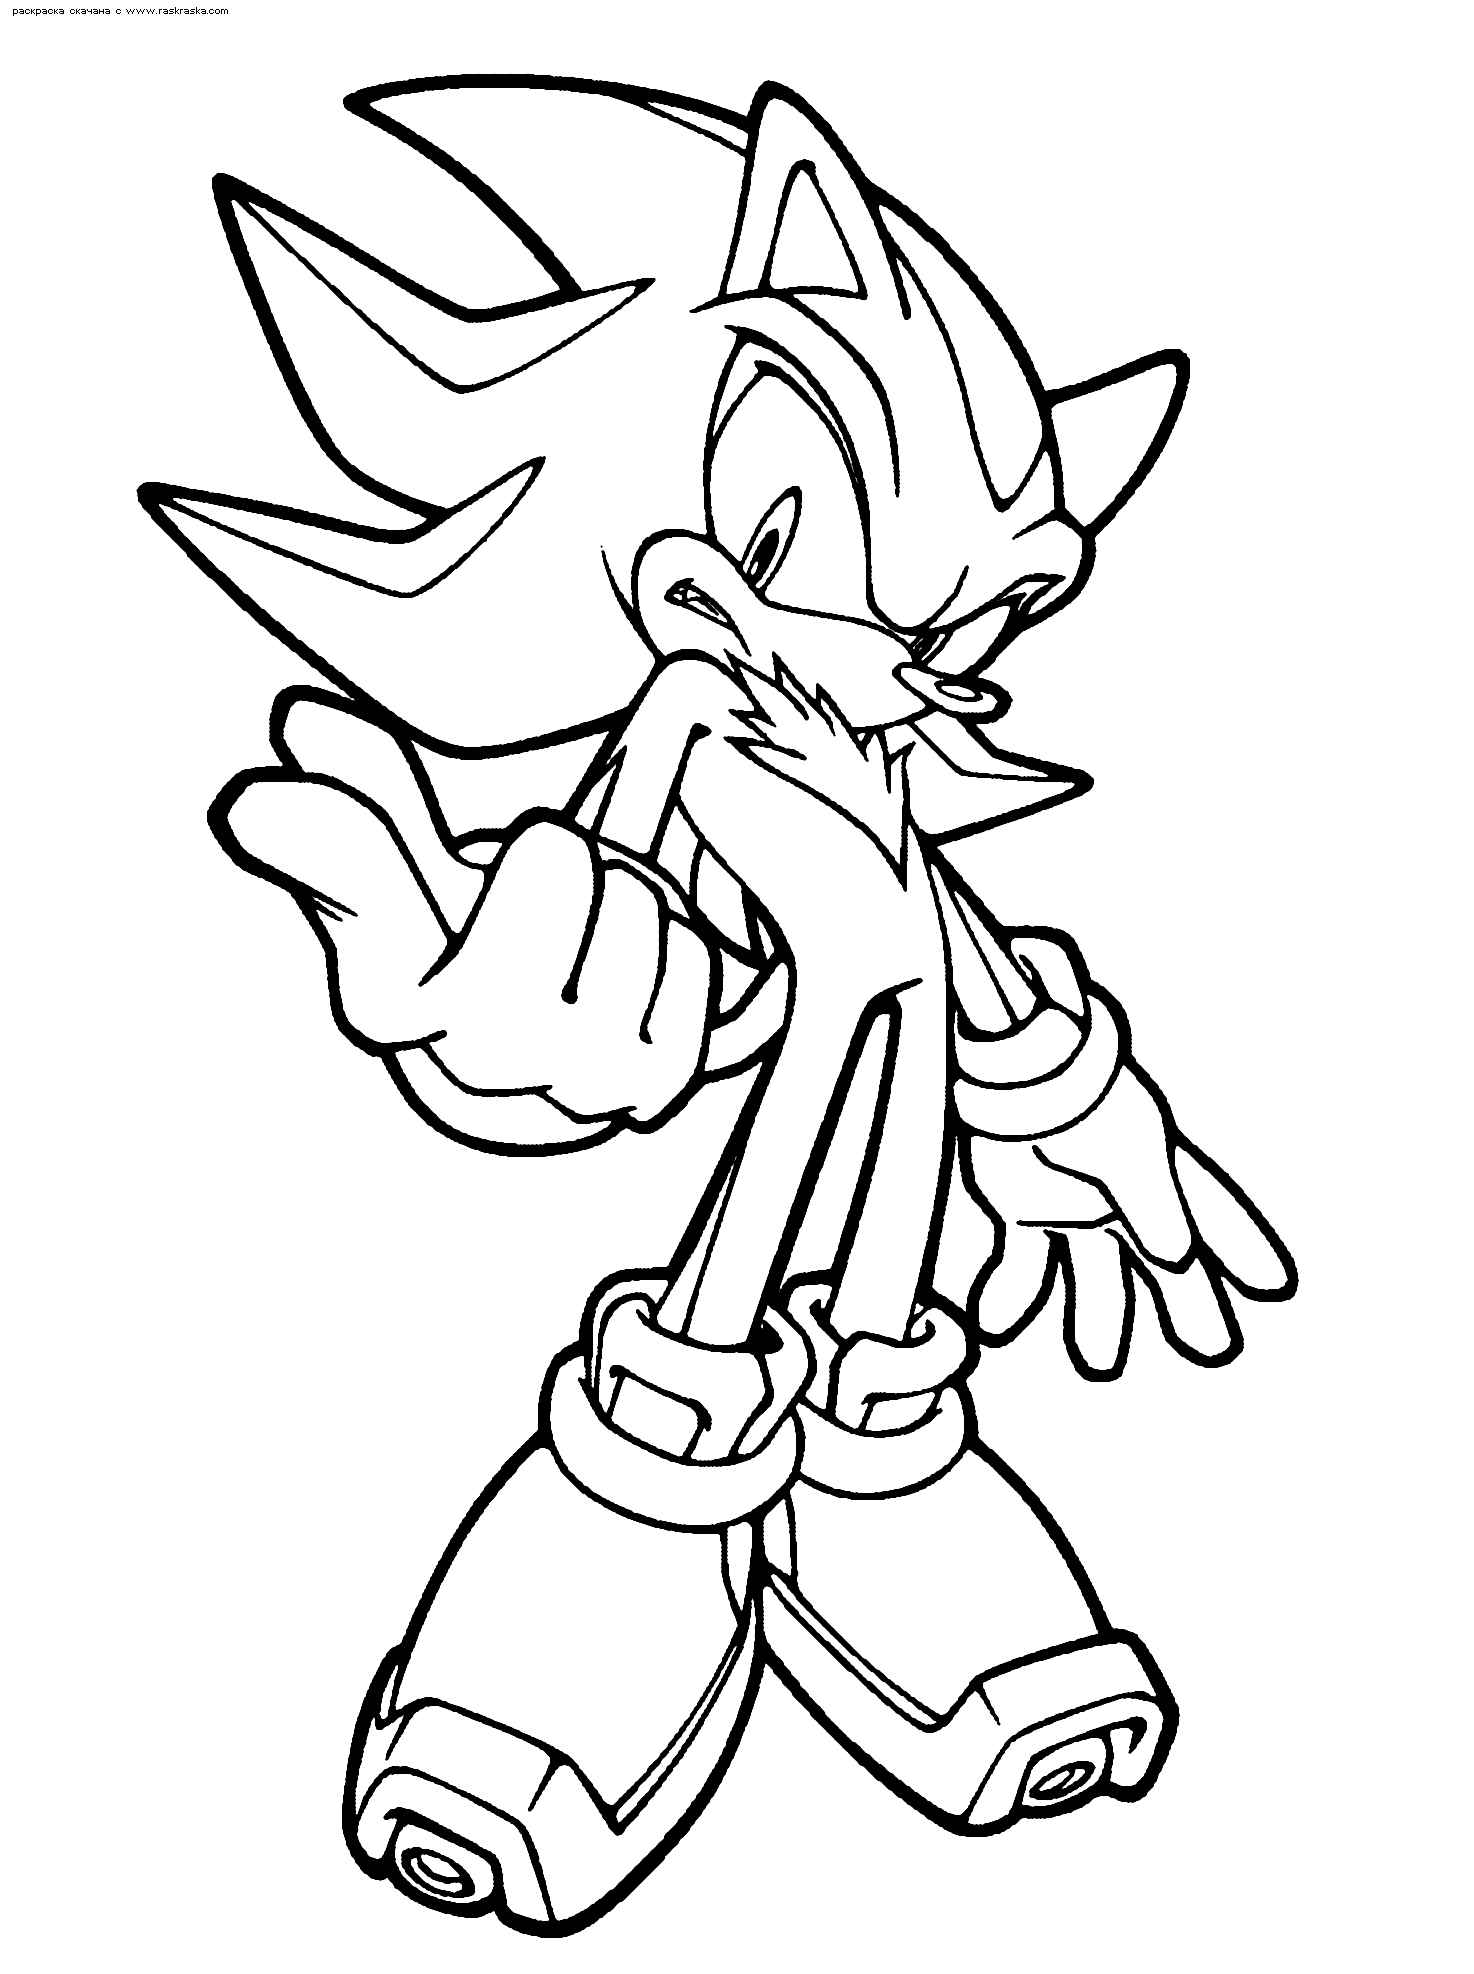 Sonic the hedgehog coloring pages knuckles coloring for Sonic the hedgehog coloring pages free